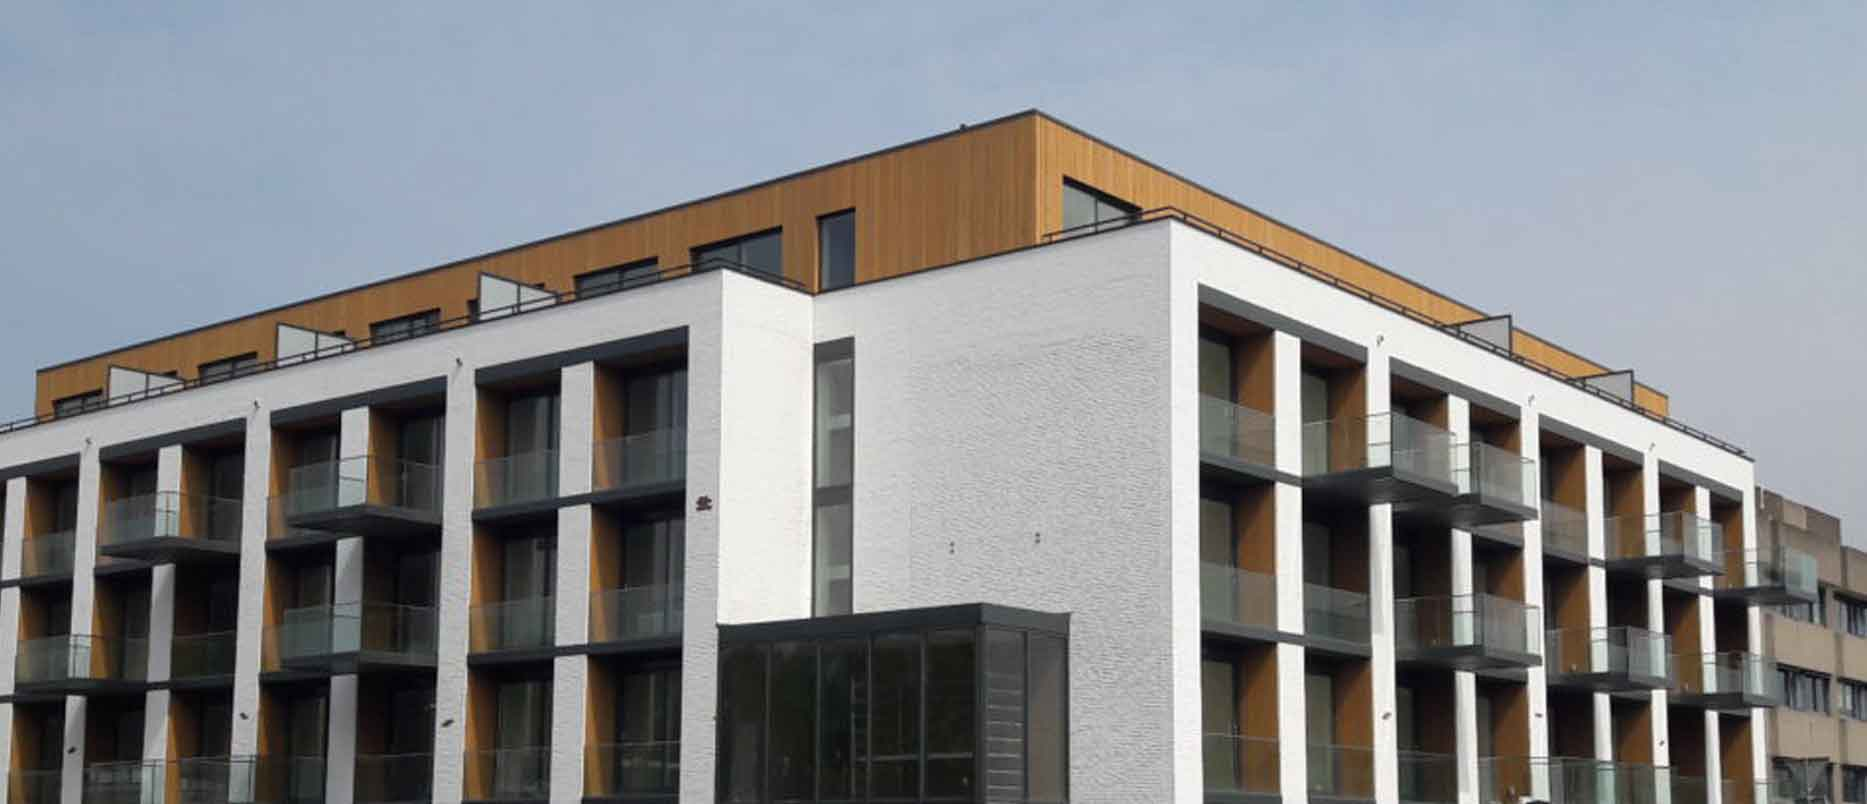 61 Apartments te Weesp